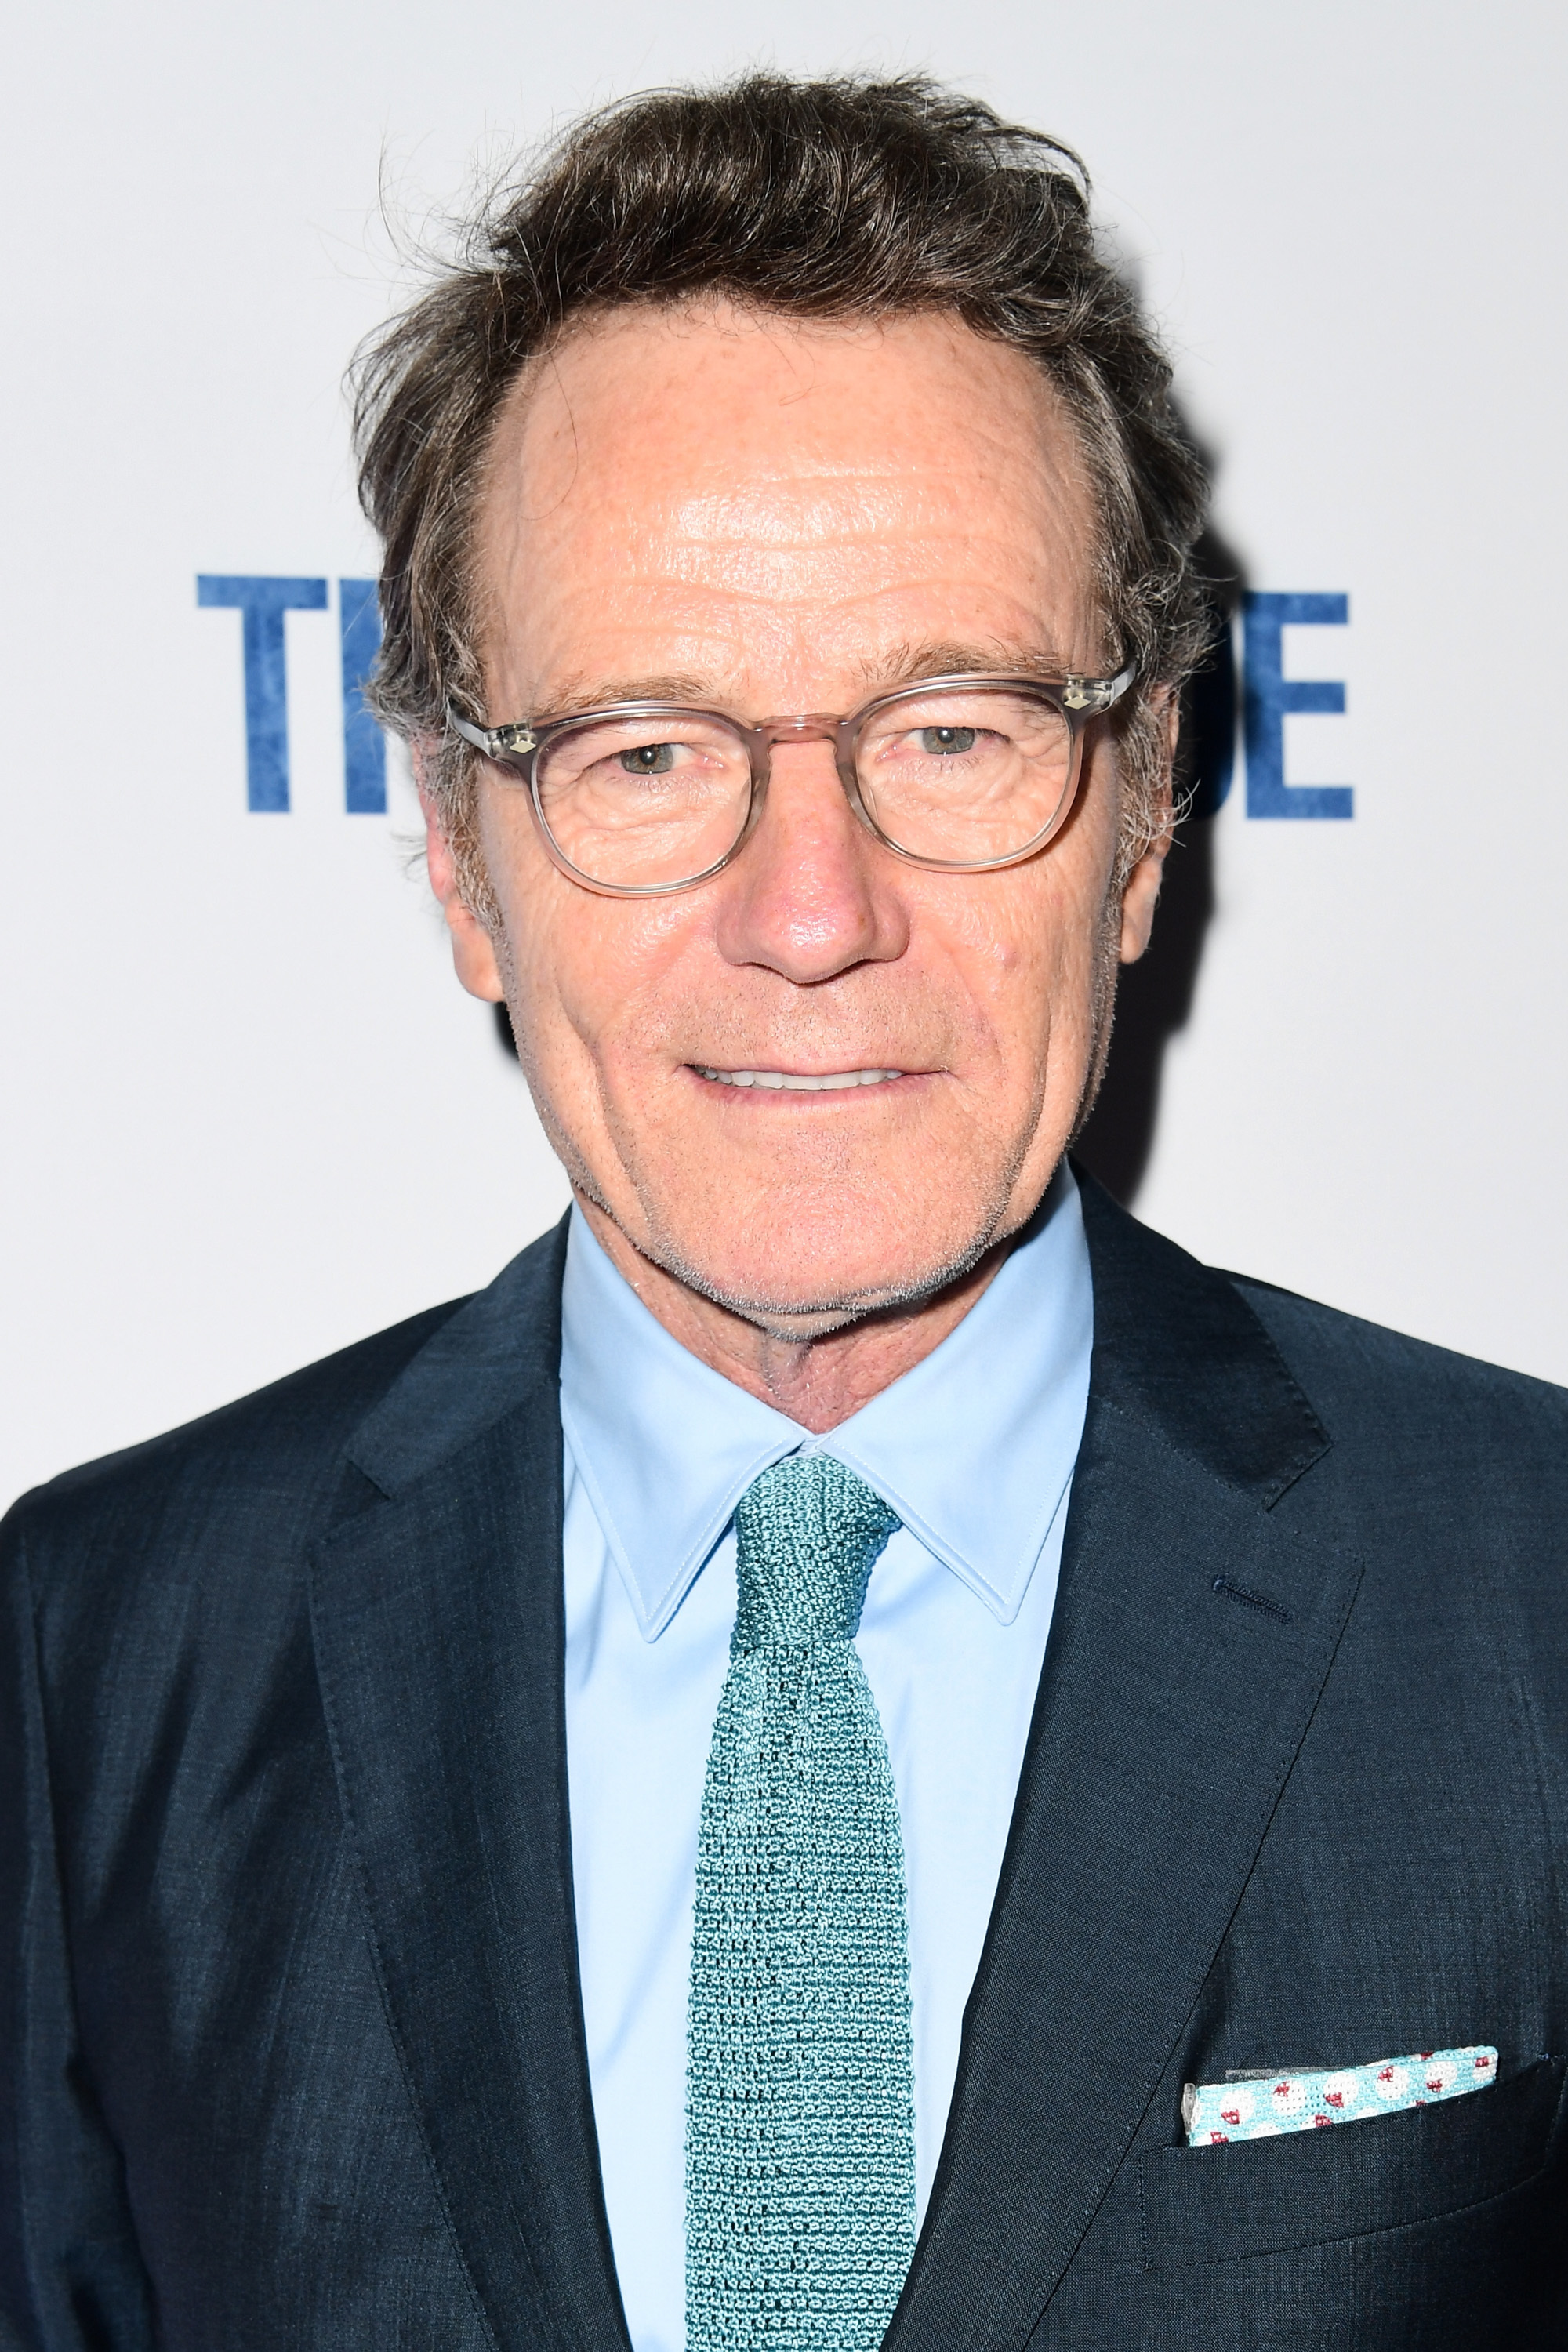 """Bryan Cranston attends the """"The Upside"""" cocktail party, hosted by RBC and The Weinstein Company, at RBC House during the Toronto Film Festival 2017 on Sept. 8, 2017."""